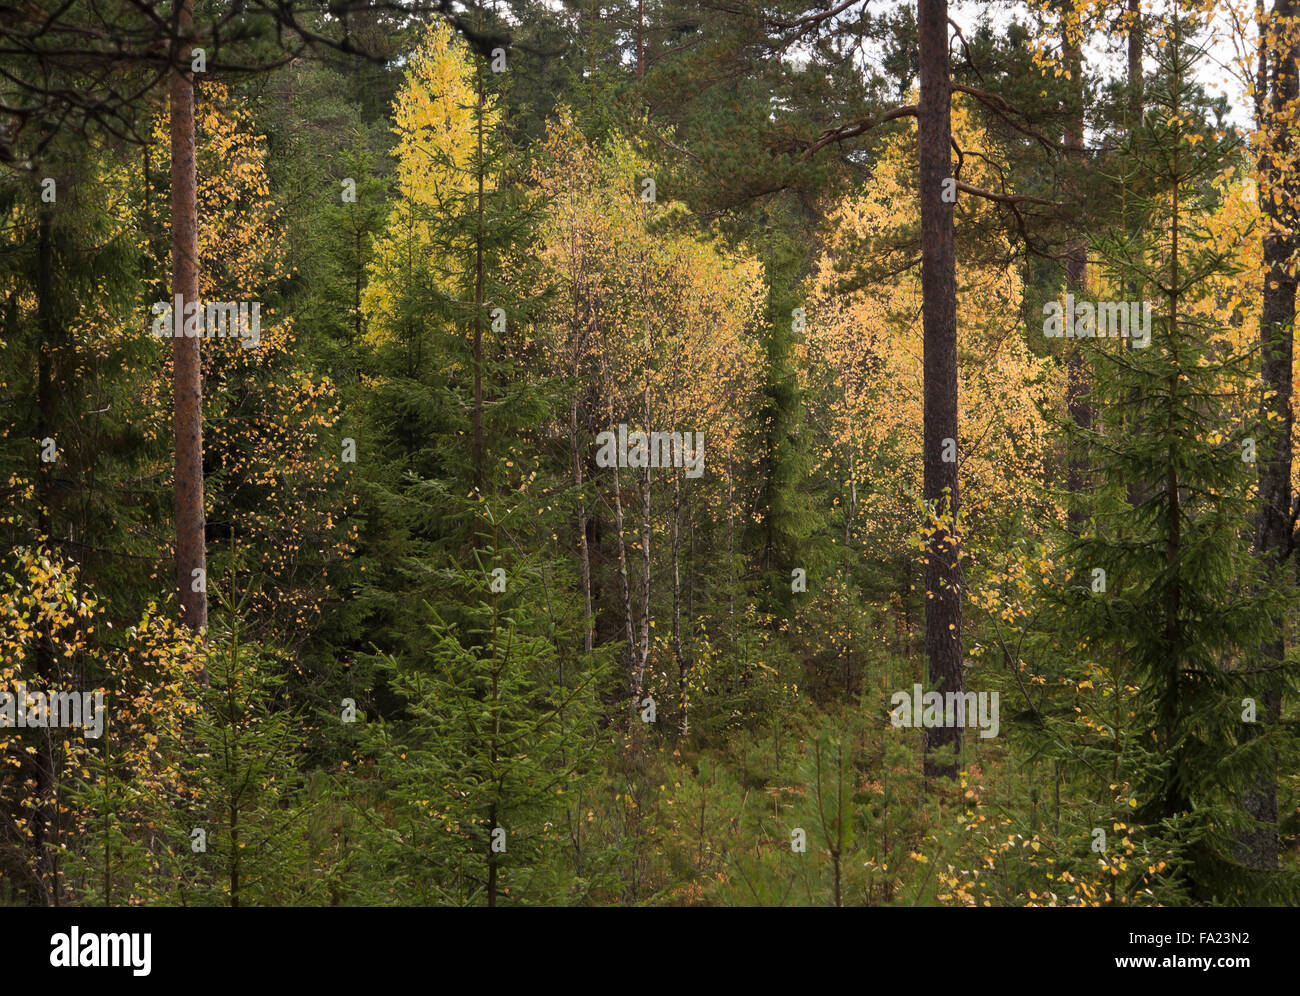 Autumnal scene from the forest in Oslo Norway, yellow leaves and dark green conifers - Stock Image